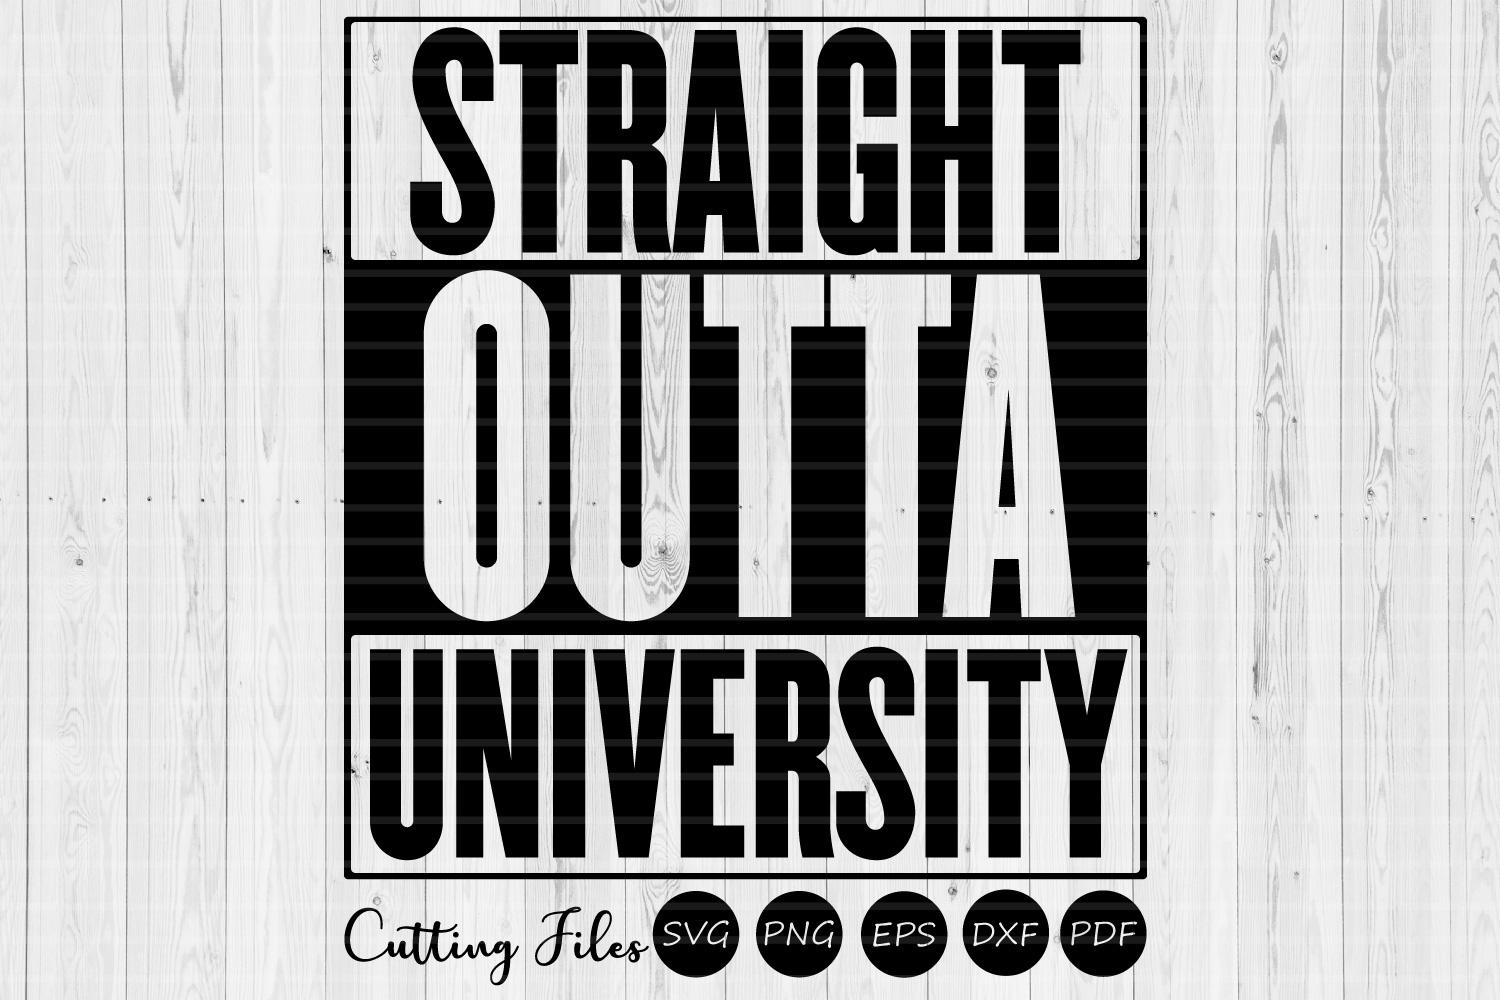 Download Free Straight Outta University Graduation Svg Graphic By Hd Art for Cricut Explore, Silhouette and other cutting machines.